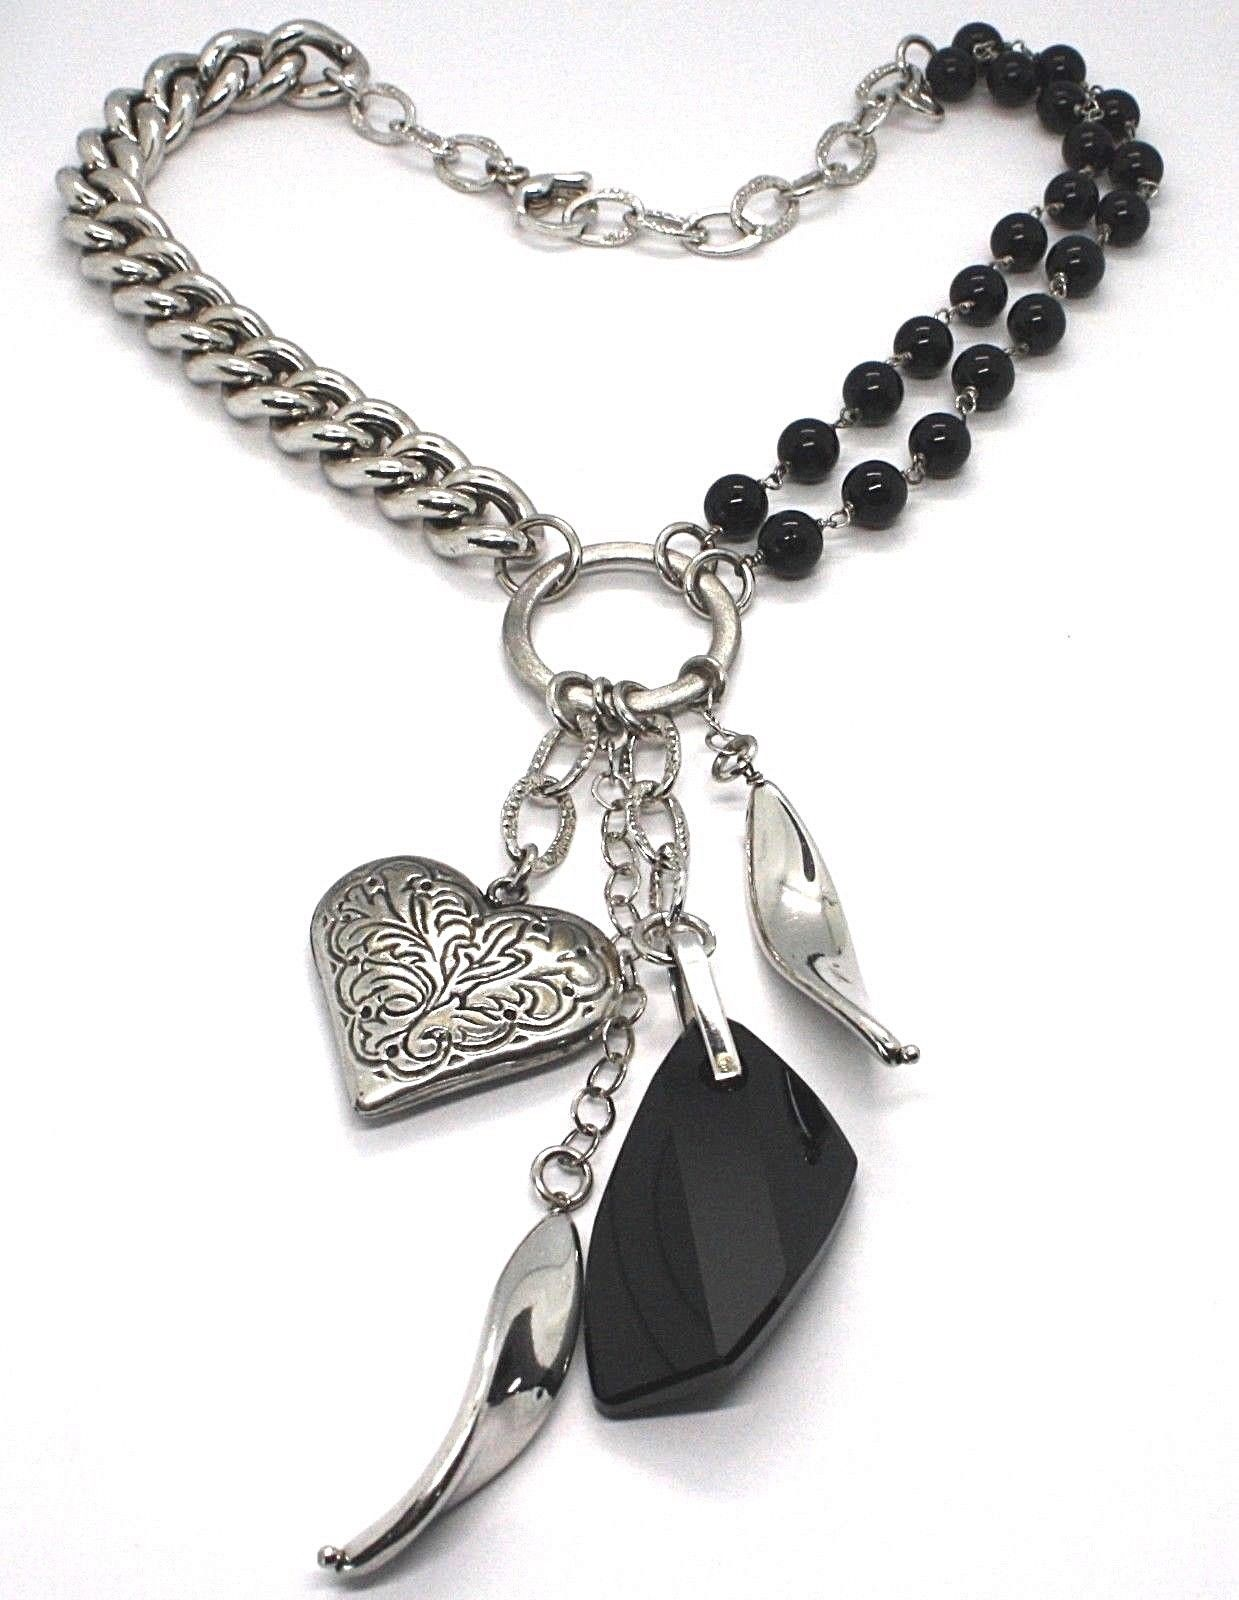 SILVER 925 NECKLACE, DOUBLE ROW ONYX, CHAIN CURB CHAIN, HEART MILLED